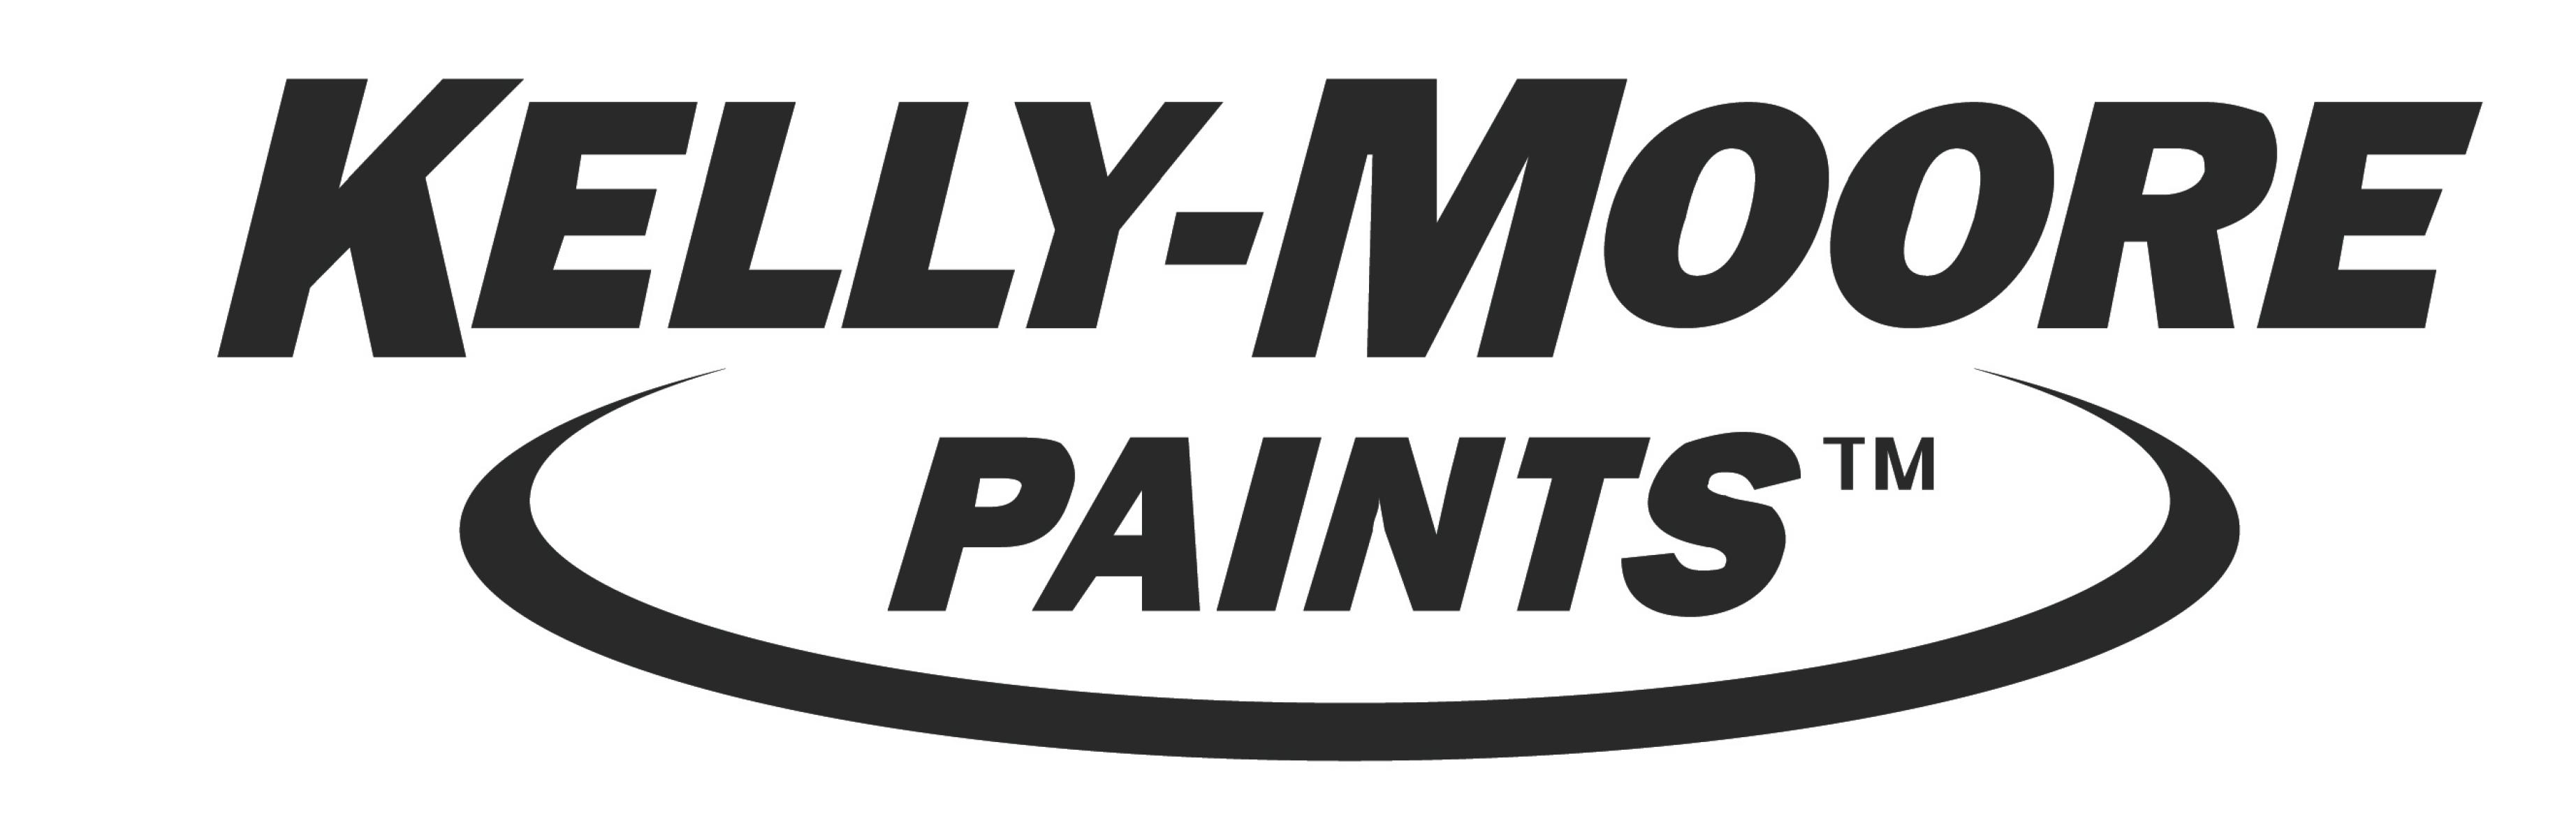 logo of Kelly-Moore Paints